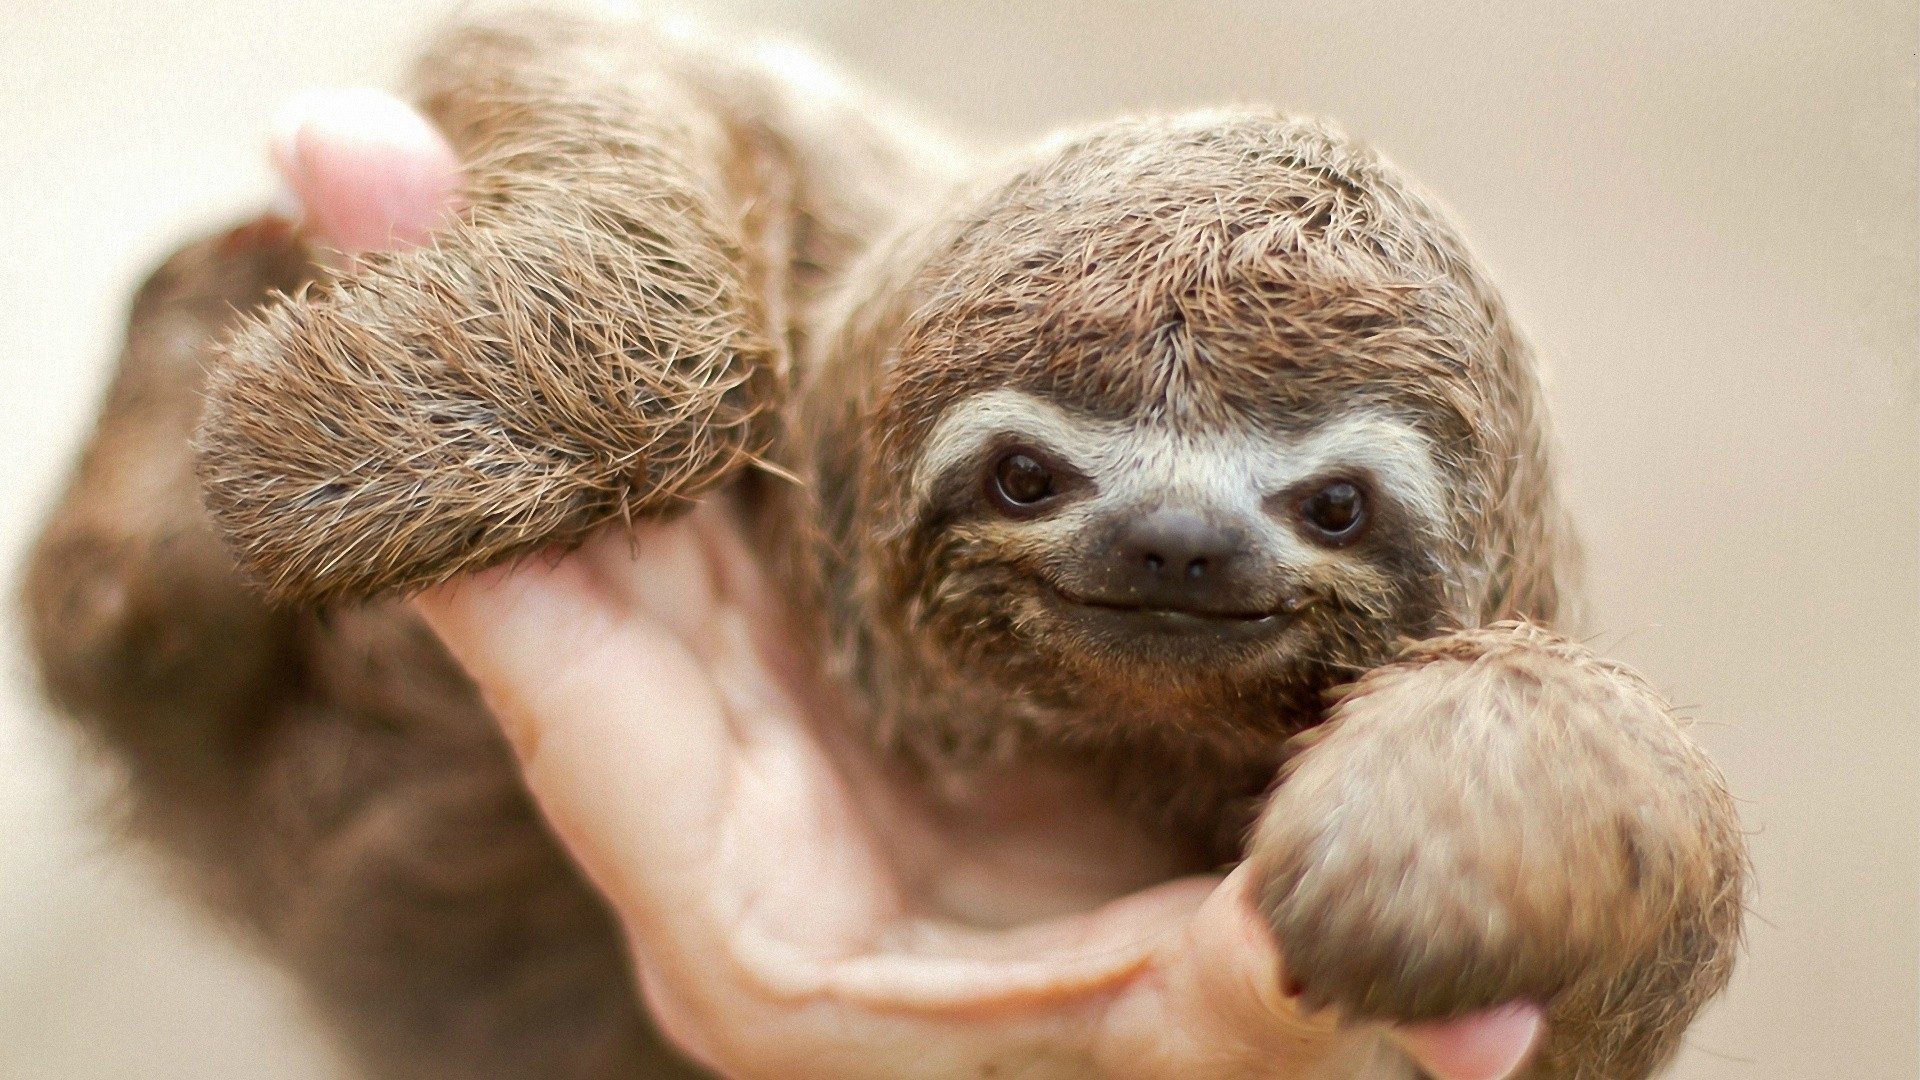 Sloth going to the bathroom - Troylers Pet Sloth Thats Right I Said Sloth